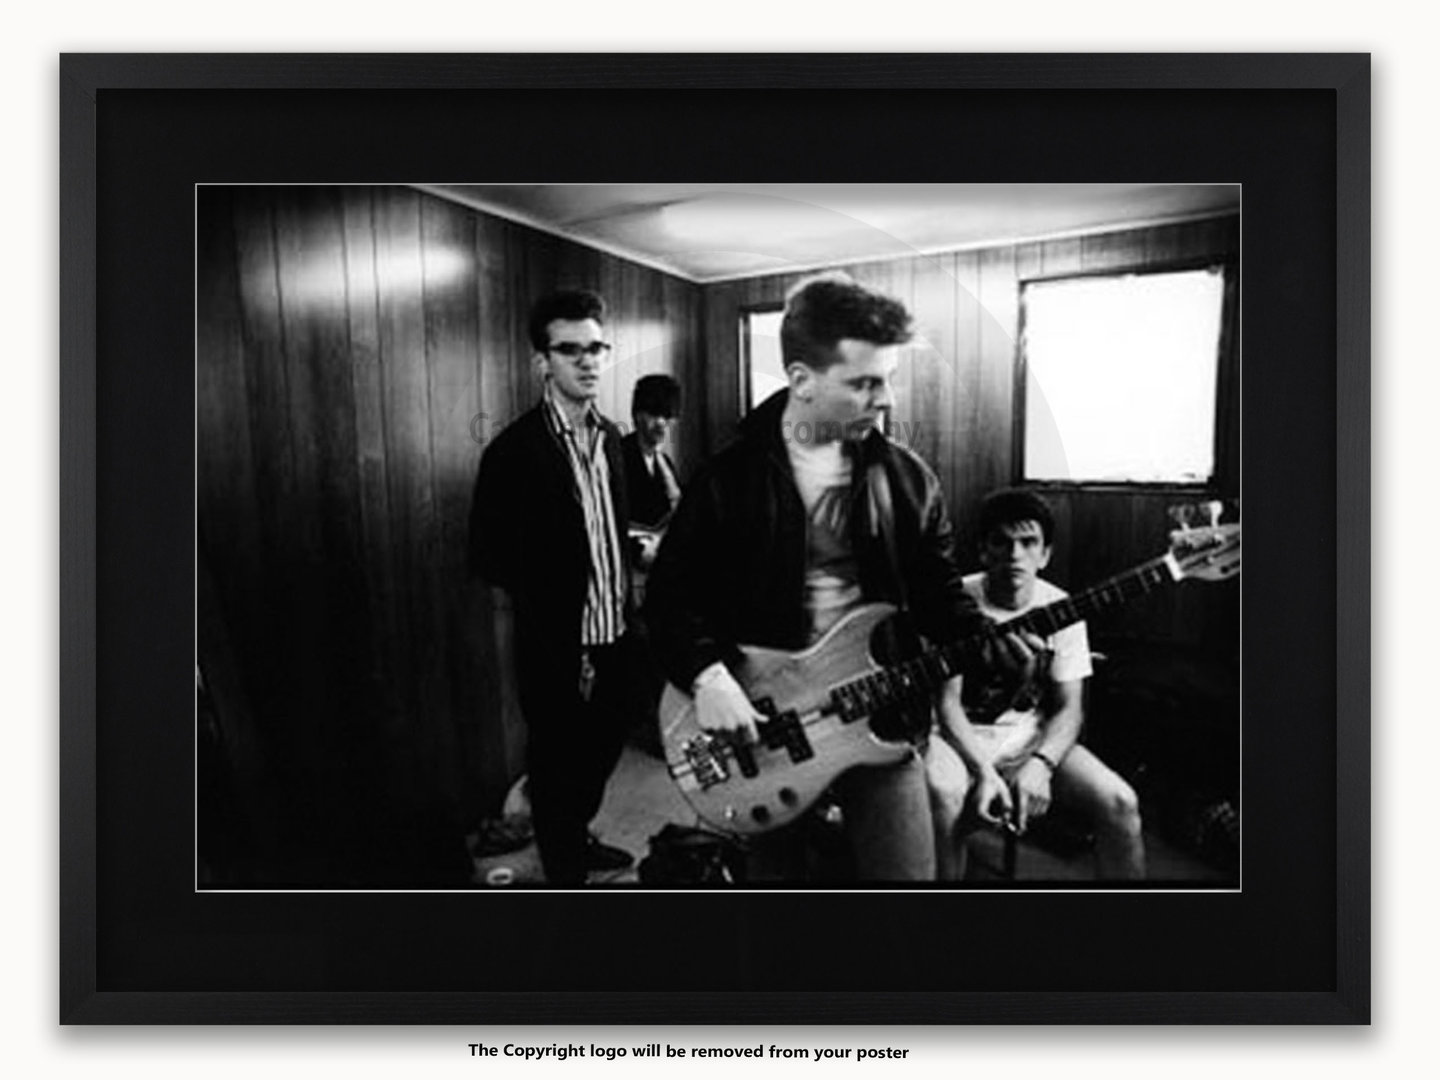 Framed With White Mount The Smiths Glastonbury A1 Rock & The Smiths Wall Art - Elitflat